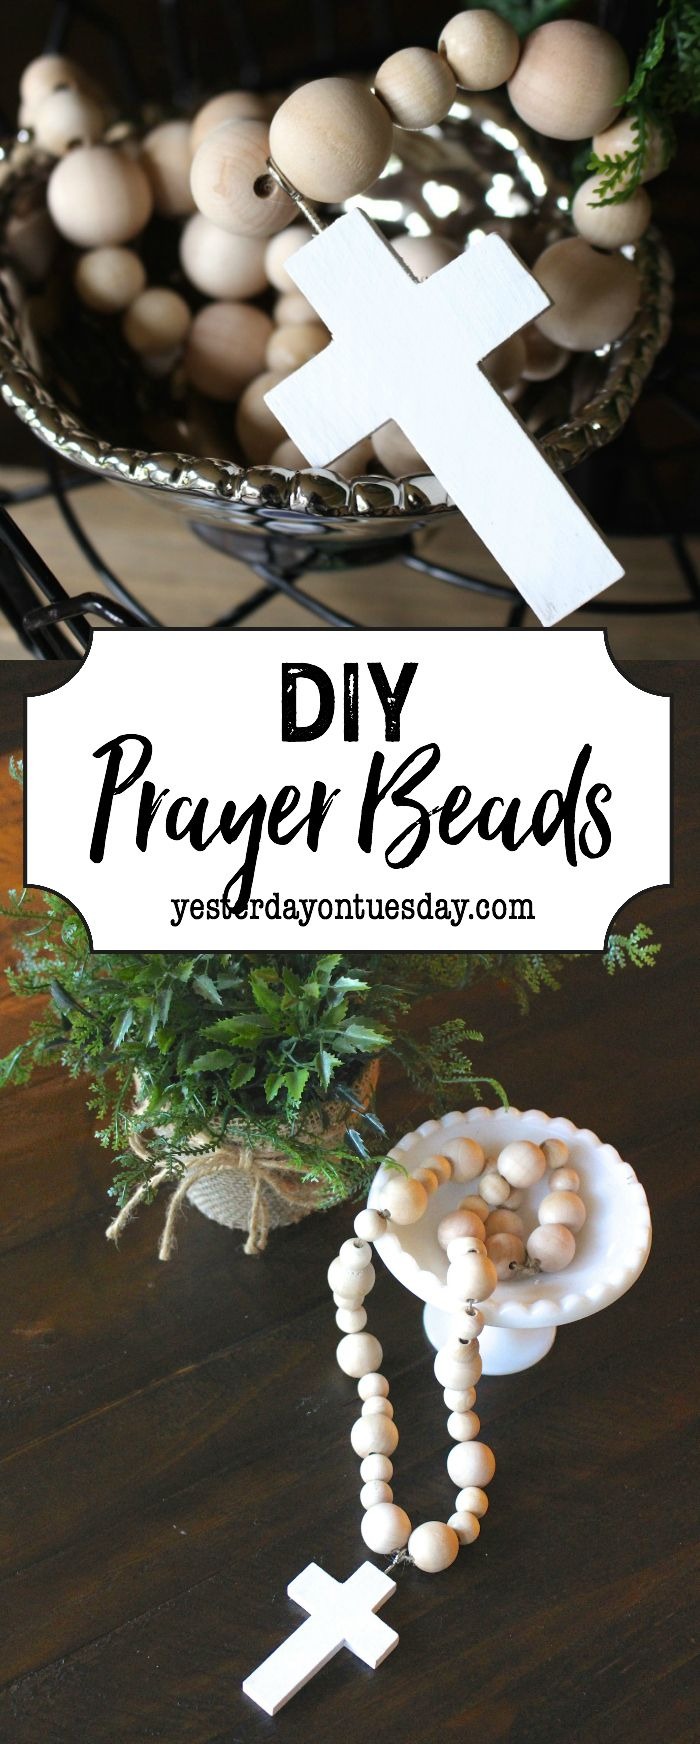 DIY Prayer Beads: How to make your own modern farmhouse style prayer beads. An easy and beautiful fixer upper style decorating detail. fixer upper | modern farmhouse | decor | prayer beads